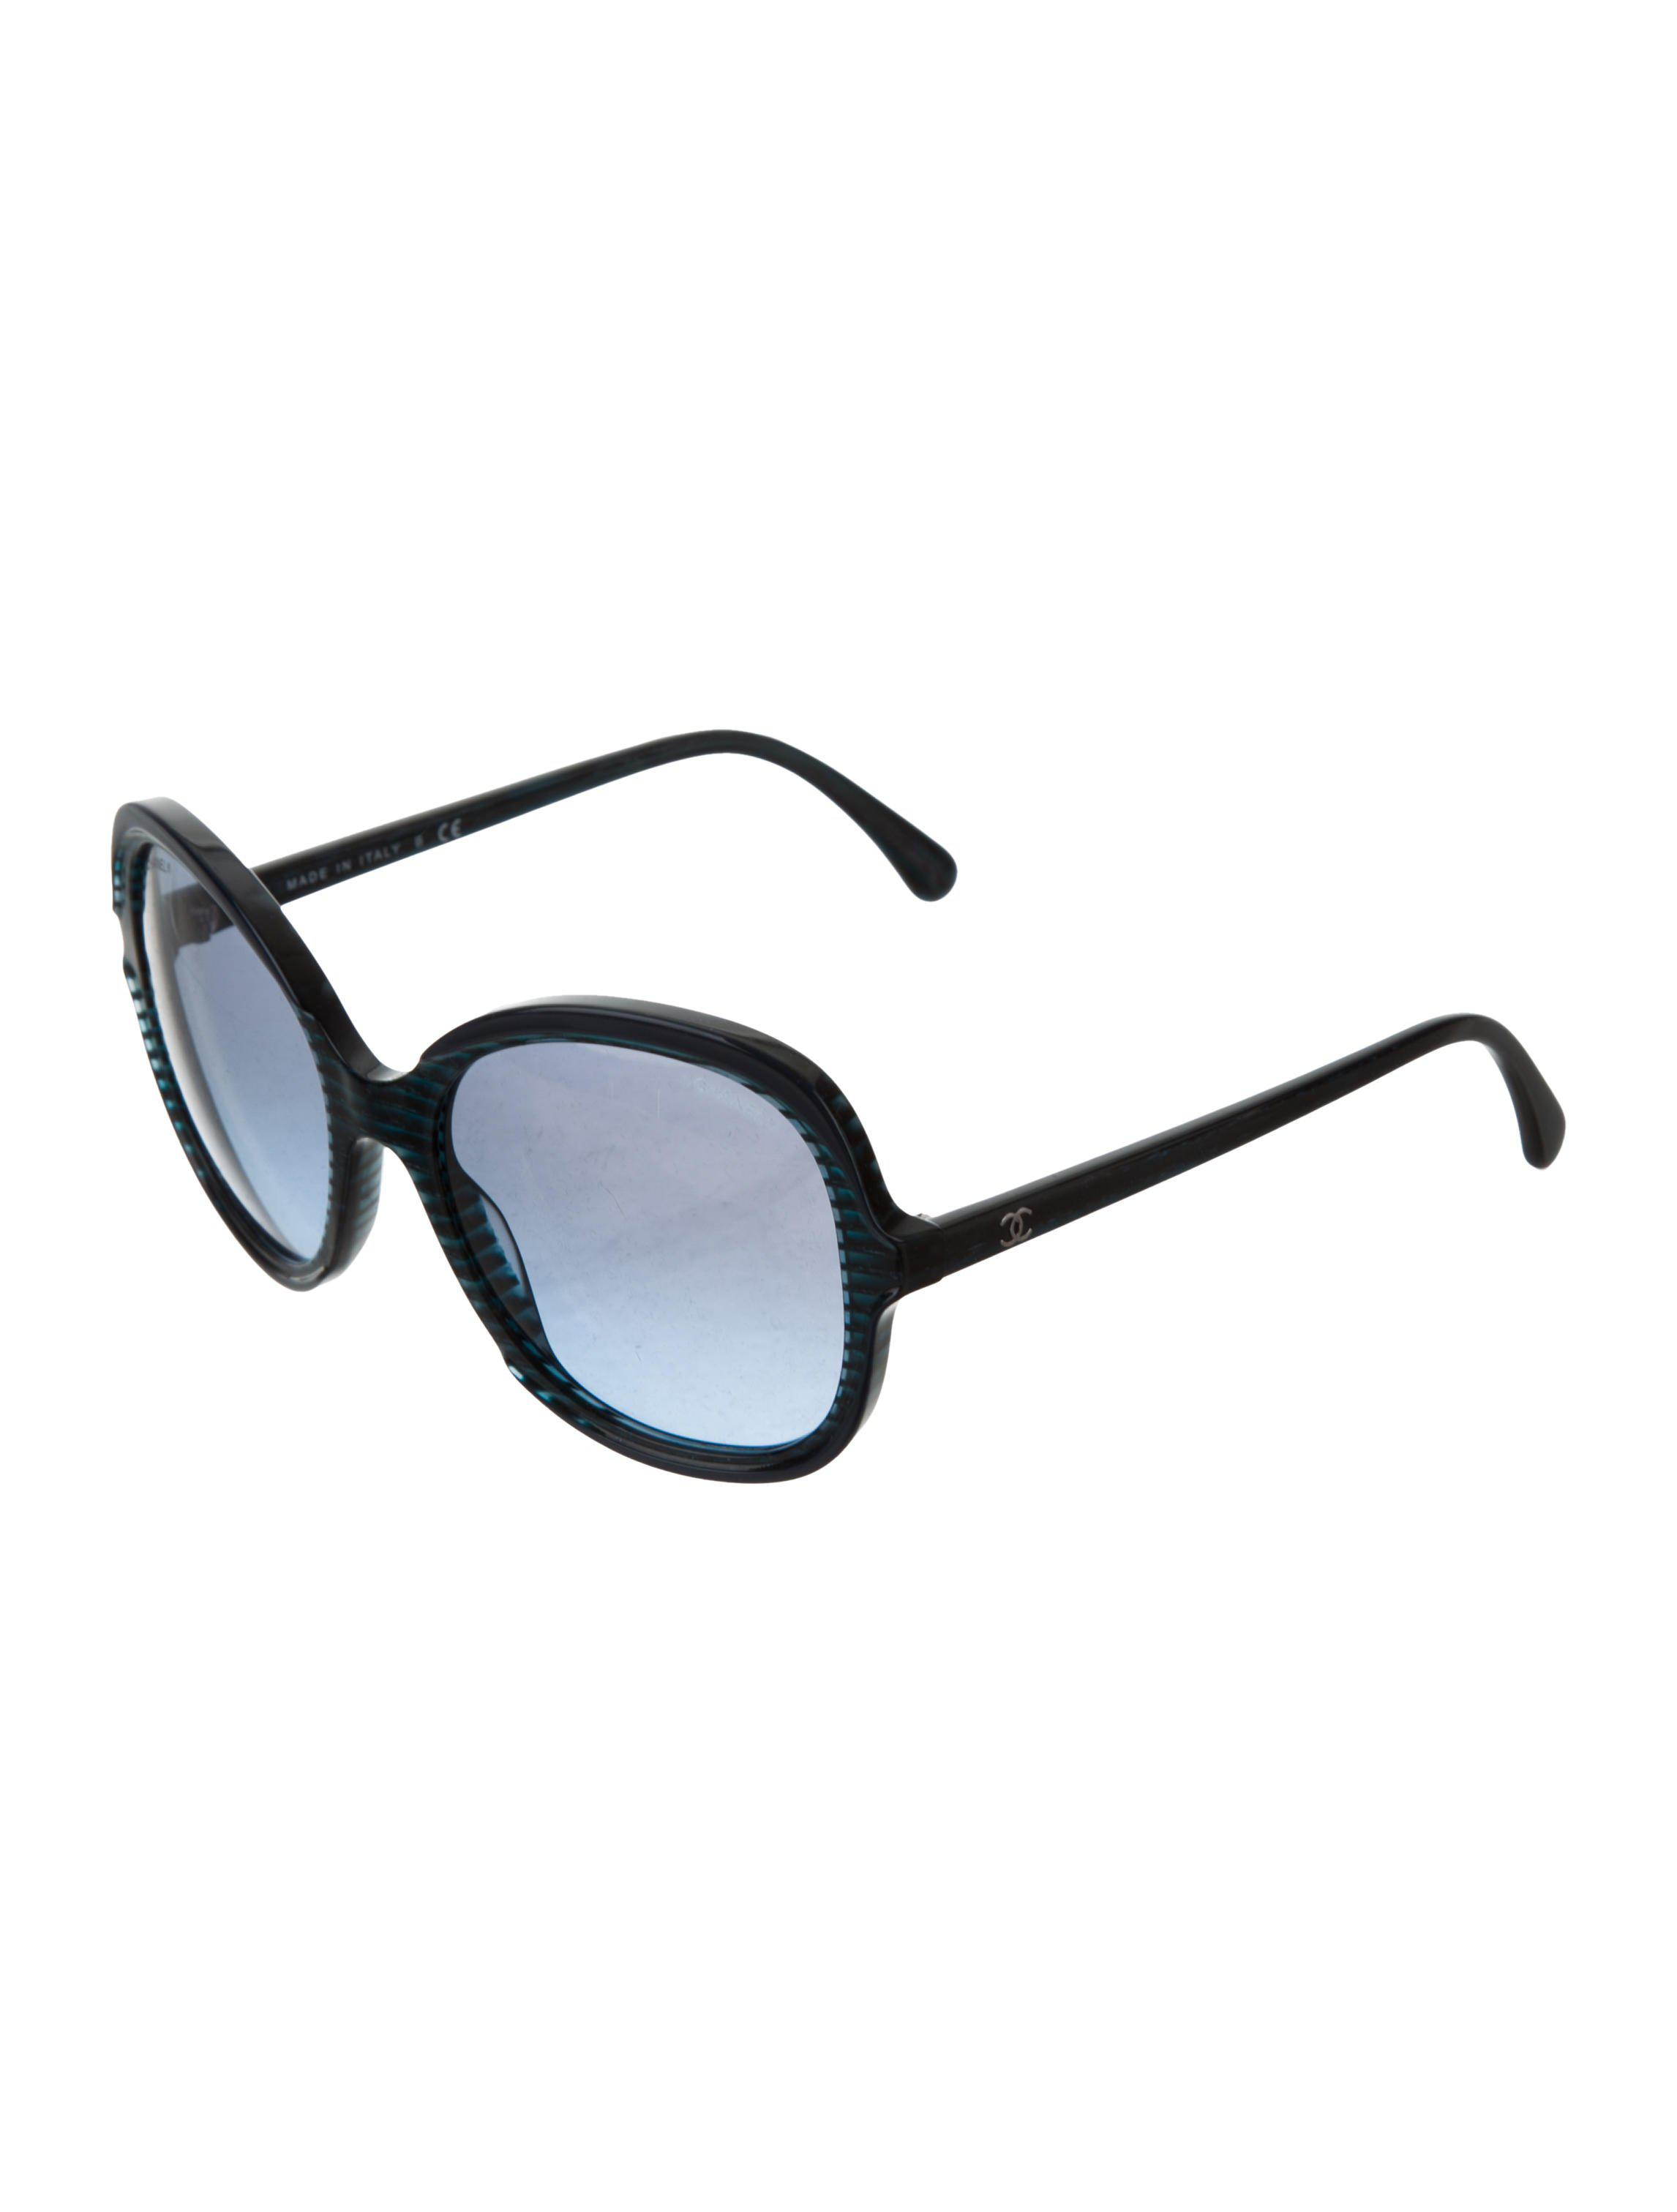 d82a1ee243 Lyst - Chanel Marbled Round Sunglasses in Blue